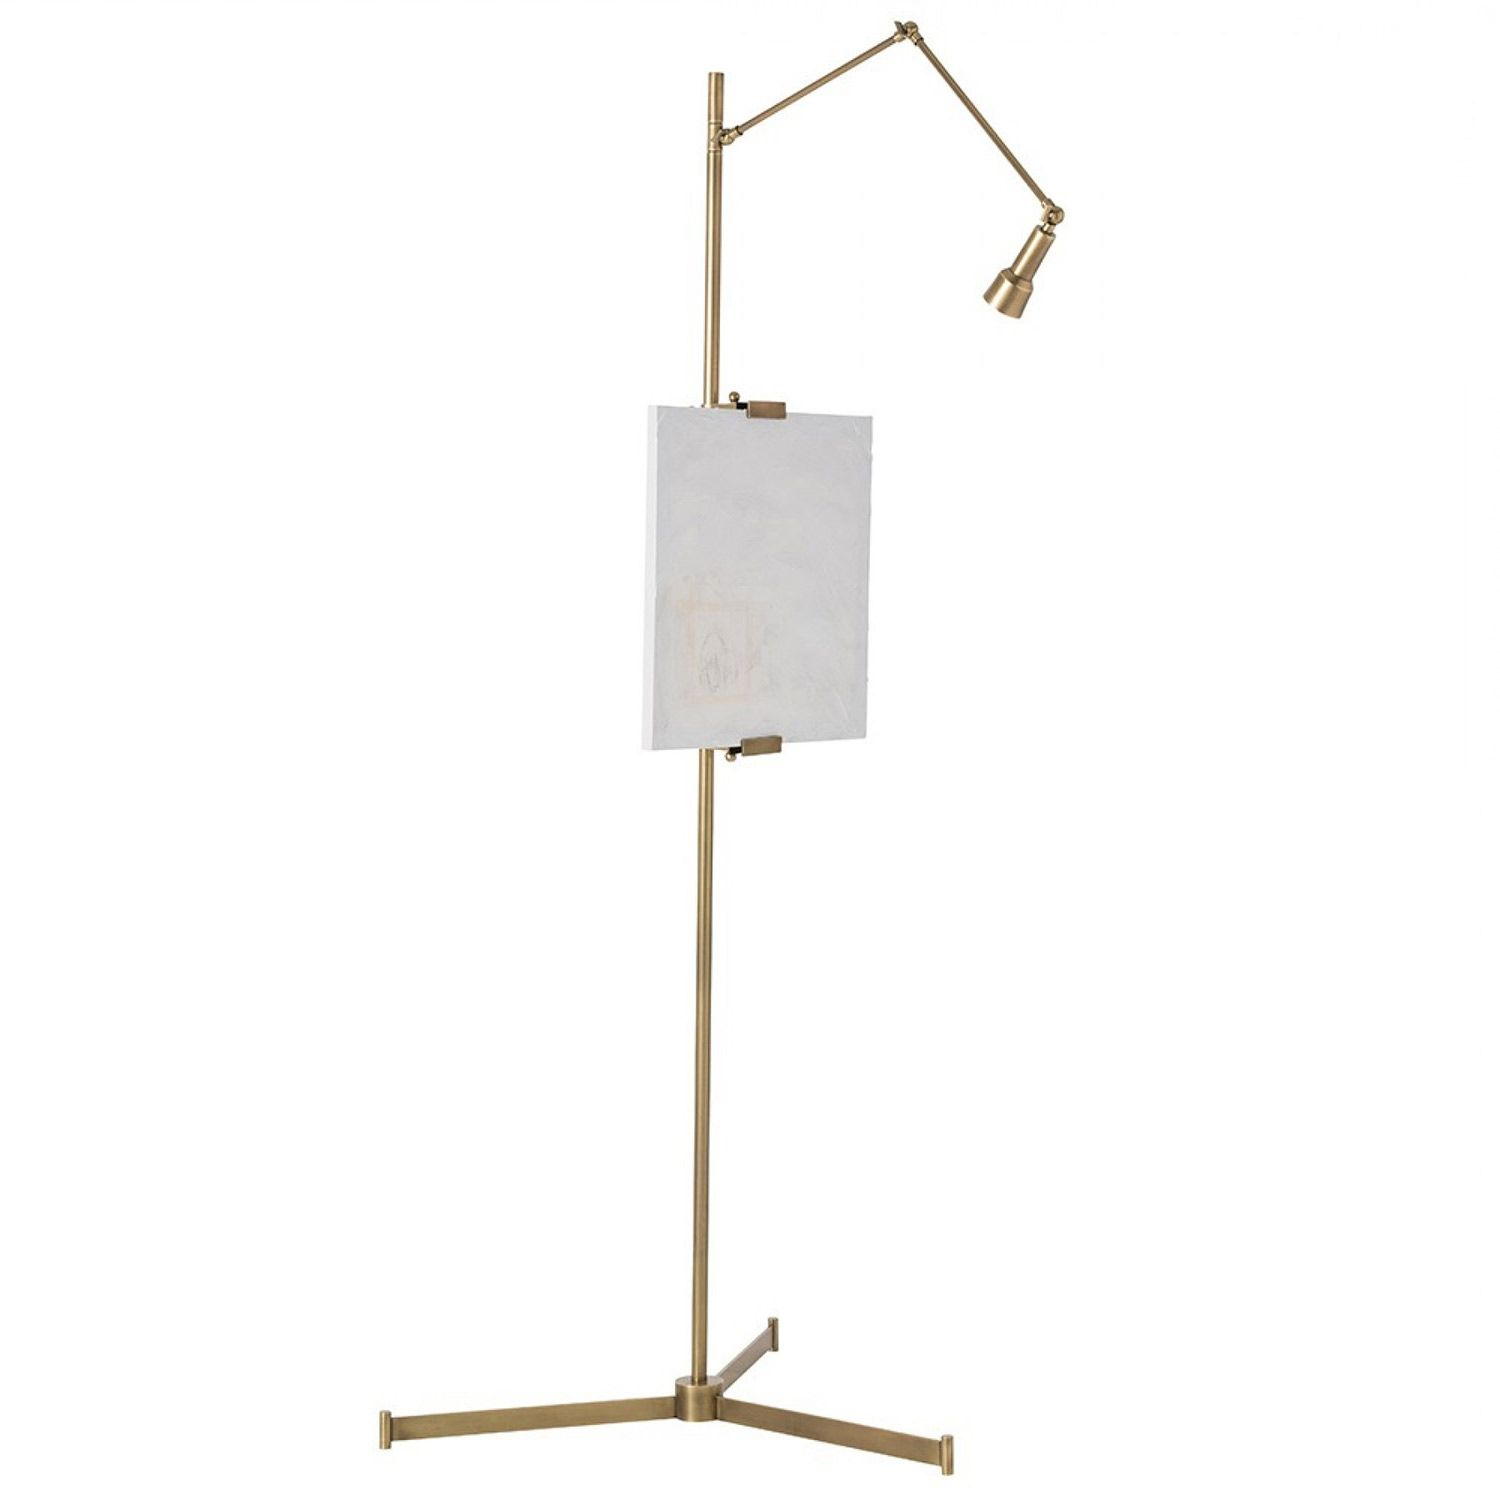 for creating artistic sanctuary the arteriors aja easel accent spotlight table lamp west elm floor illuminates with focused slim proportions modernity backsplash dimmable diy